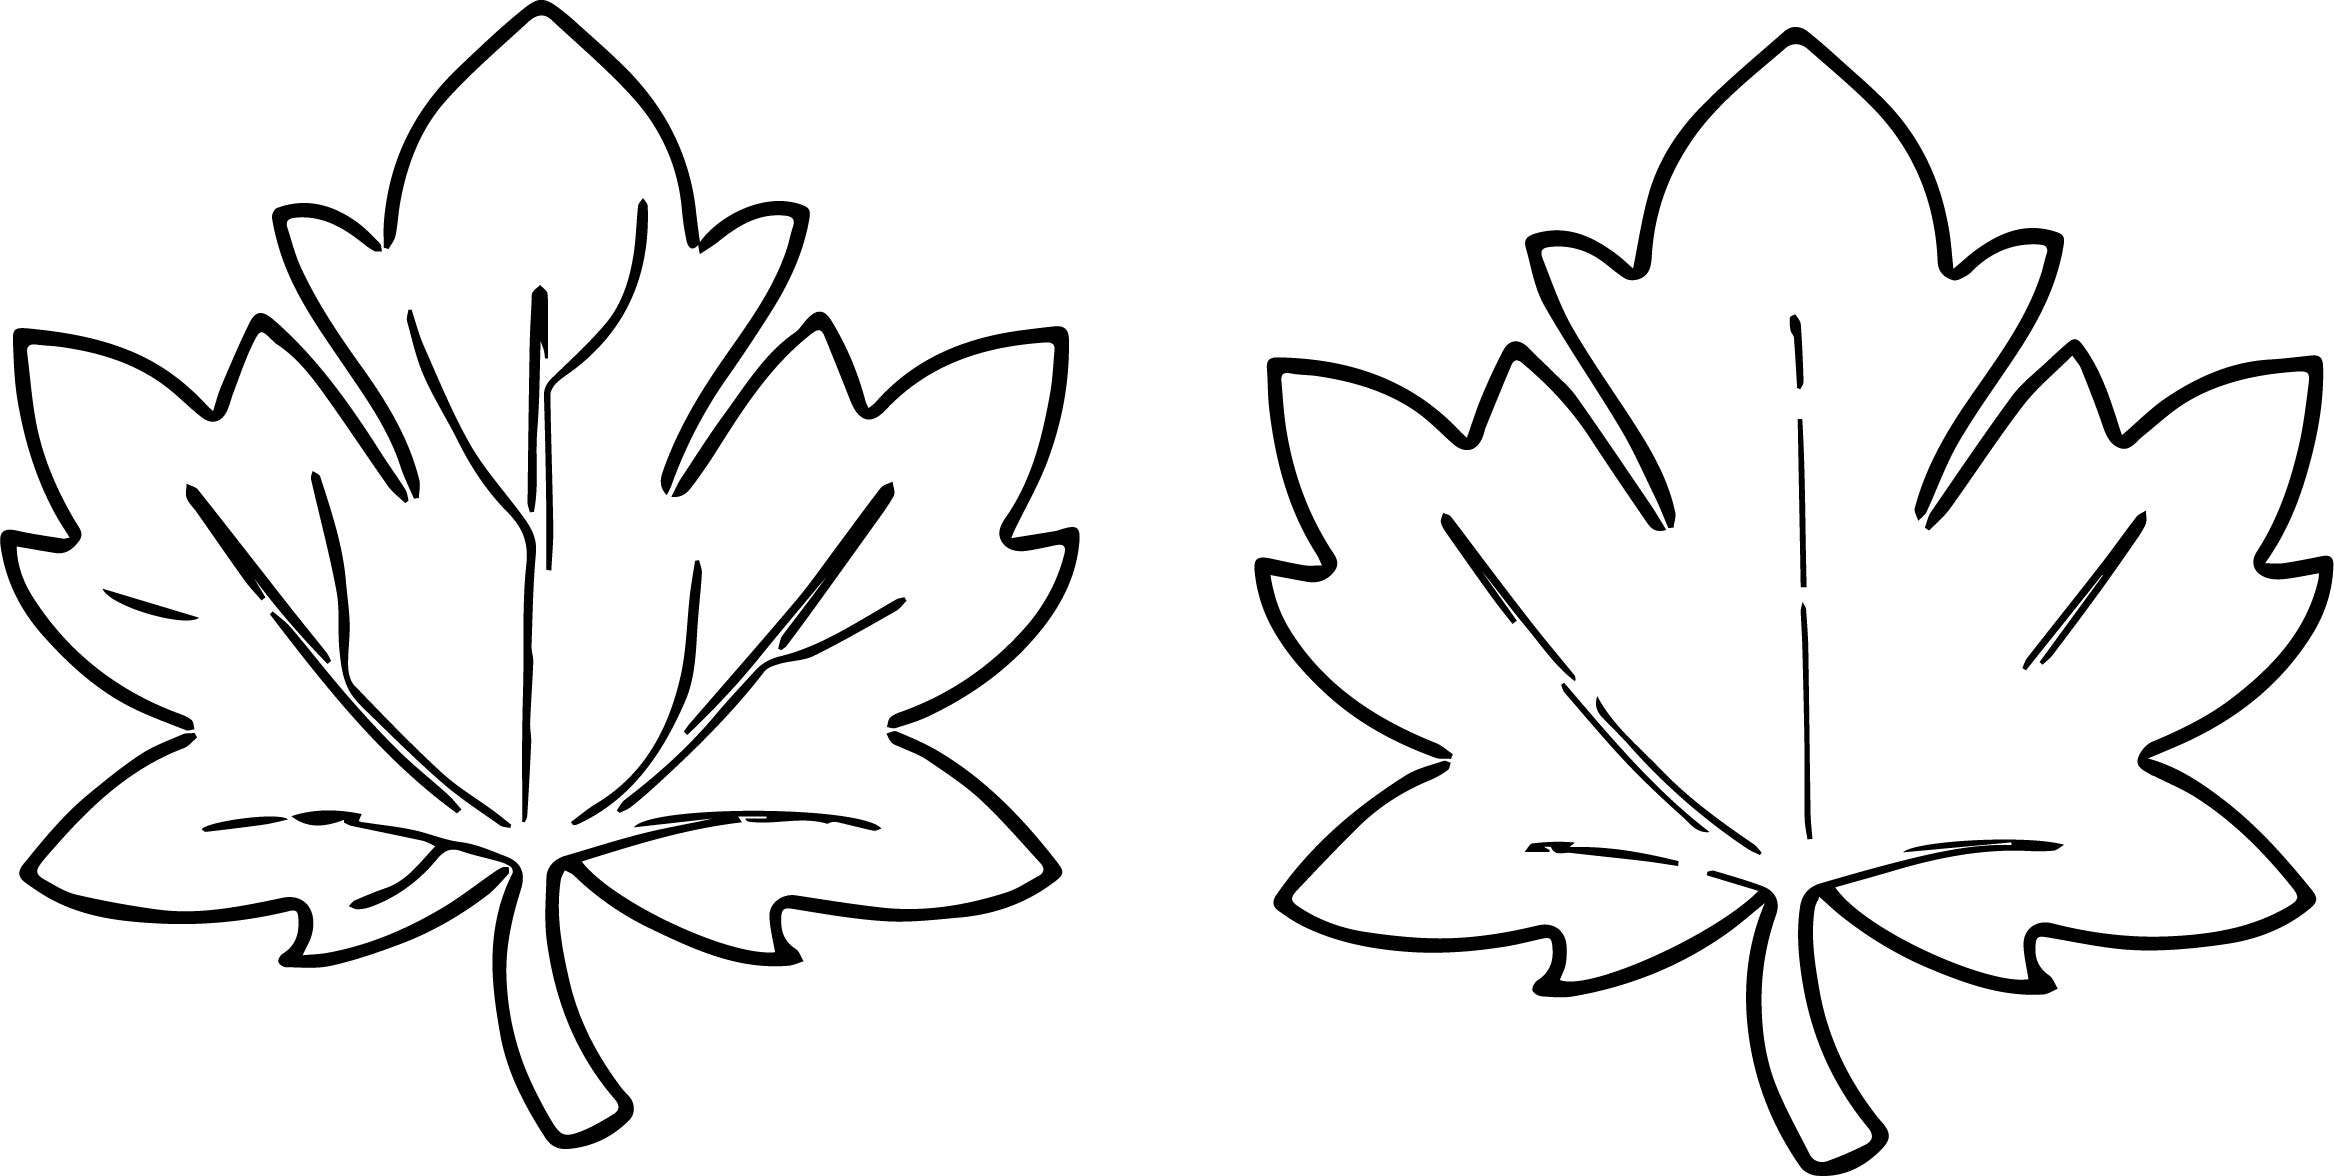 Fall leaves images for fall leaf coloring page for Coloring pages autumn leaves